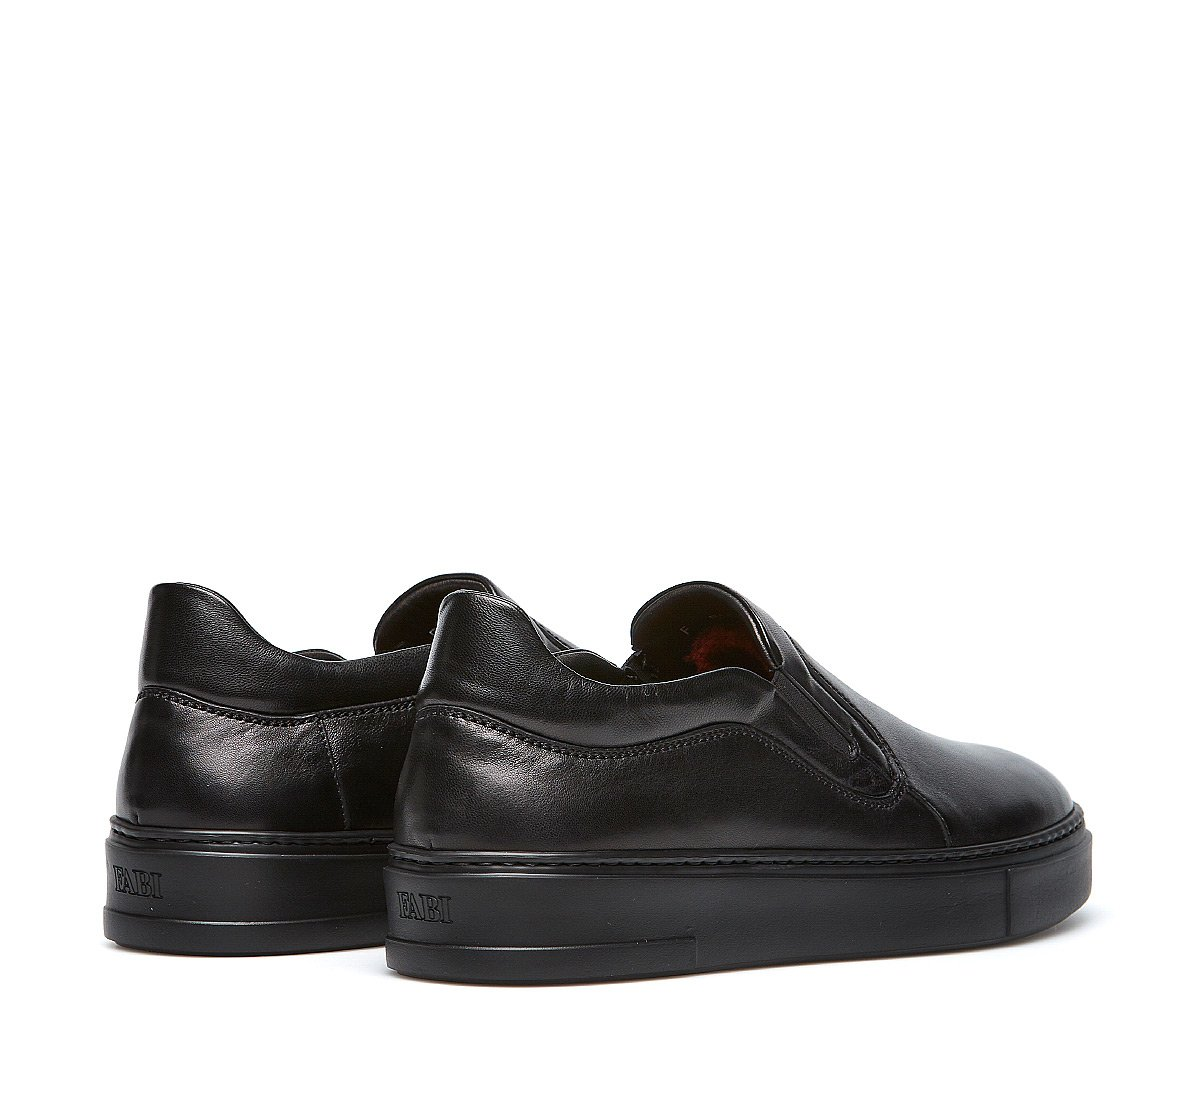 Calfskin slip-ons with warm sheepskin lining